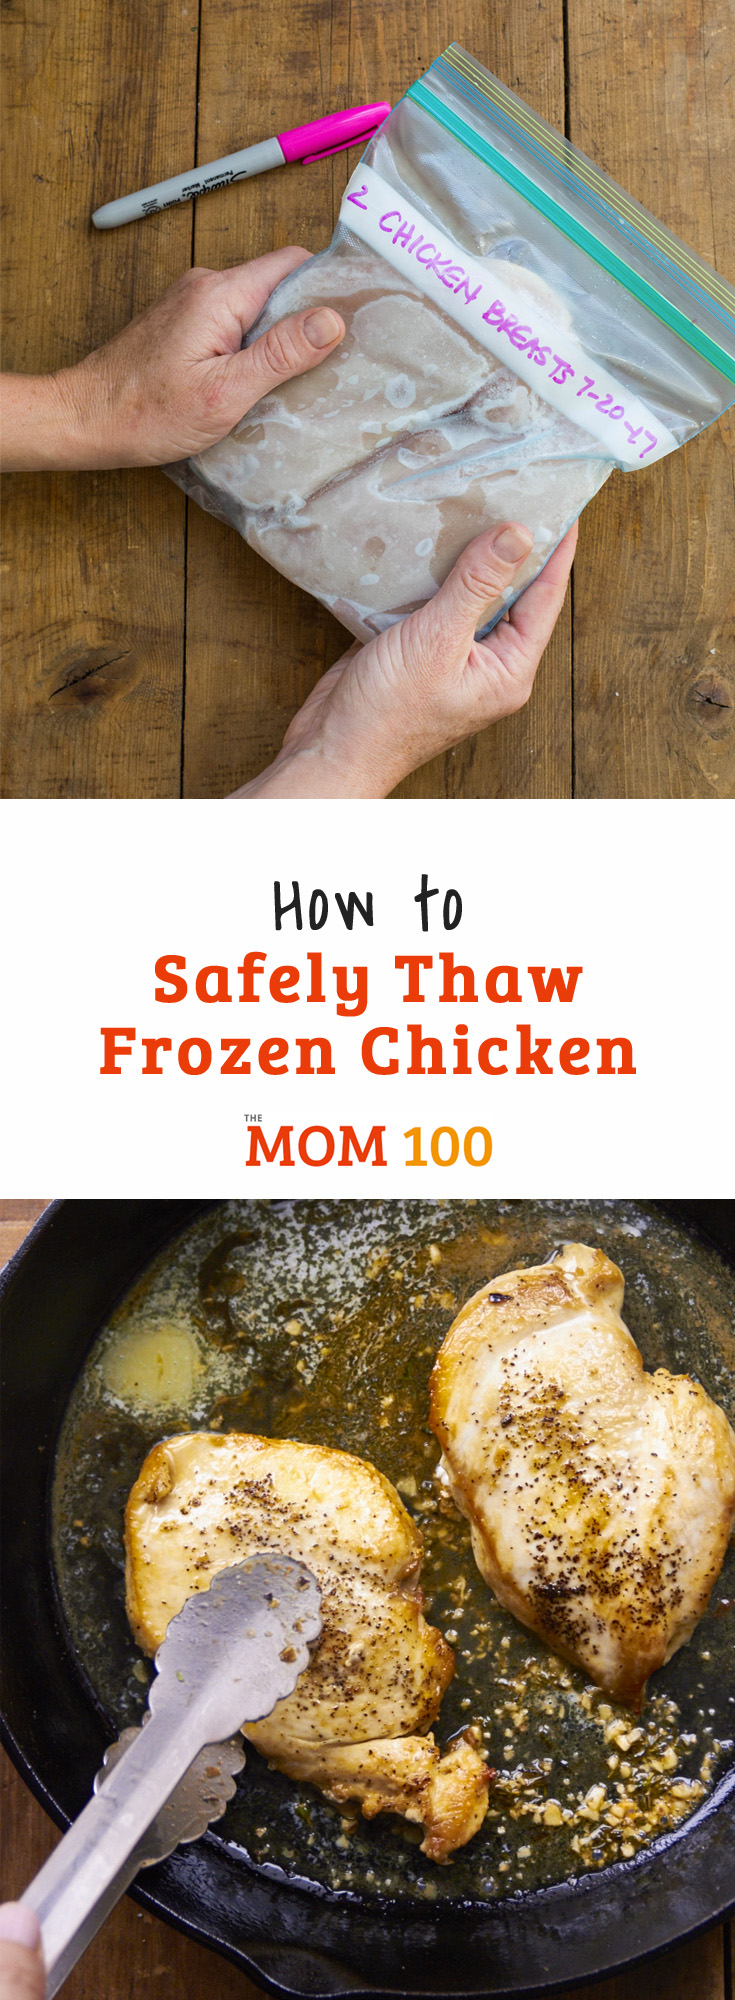 How to Safely Thaw Frozen Chicken